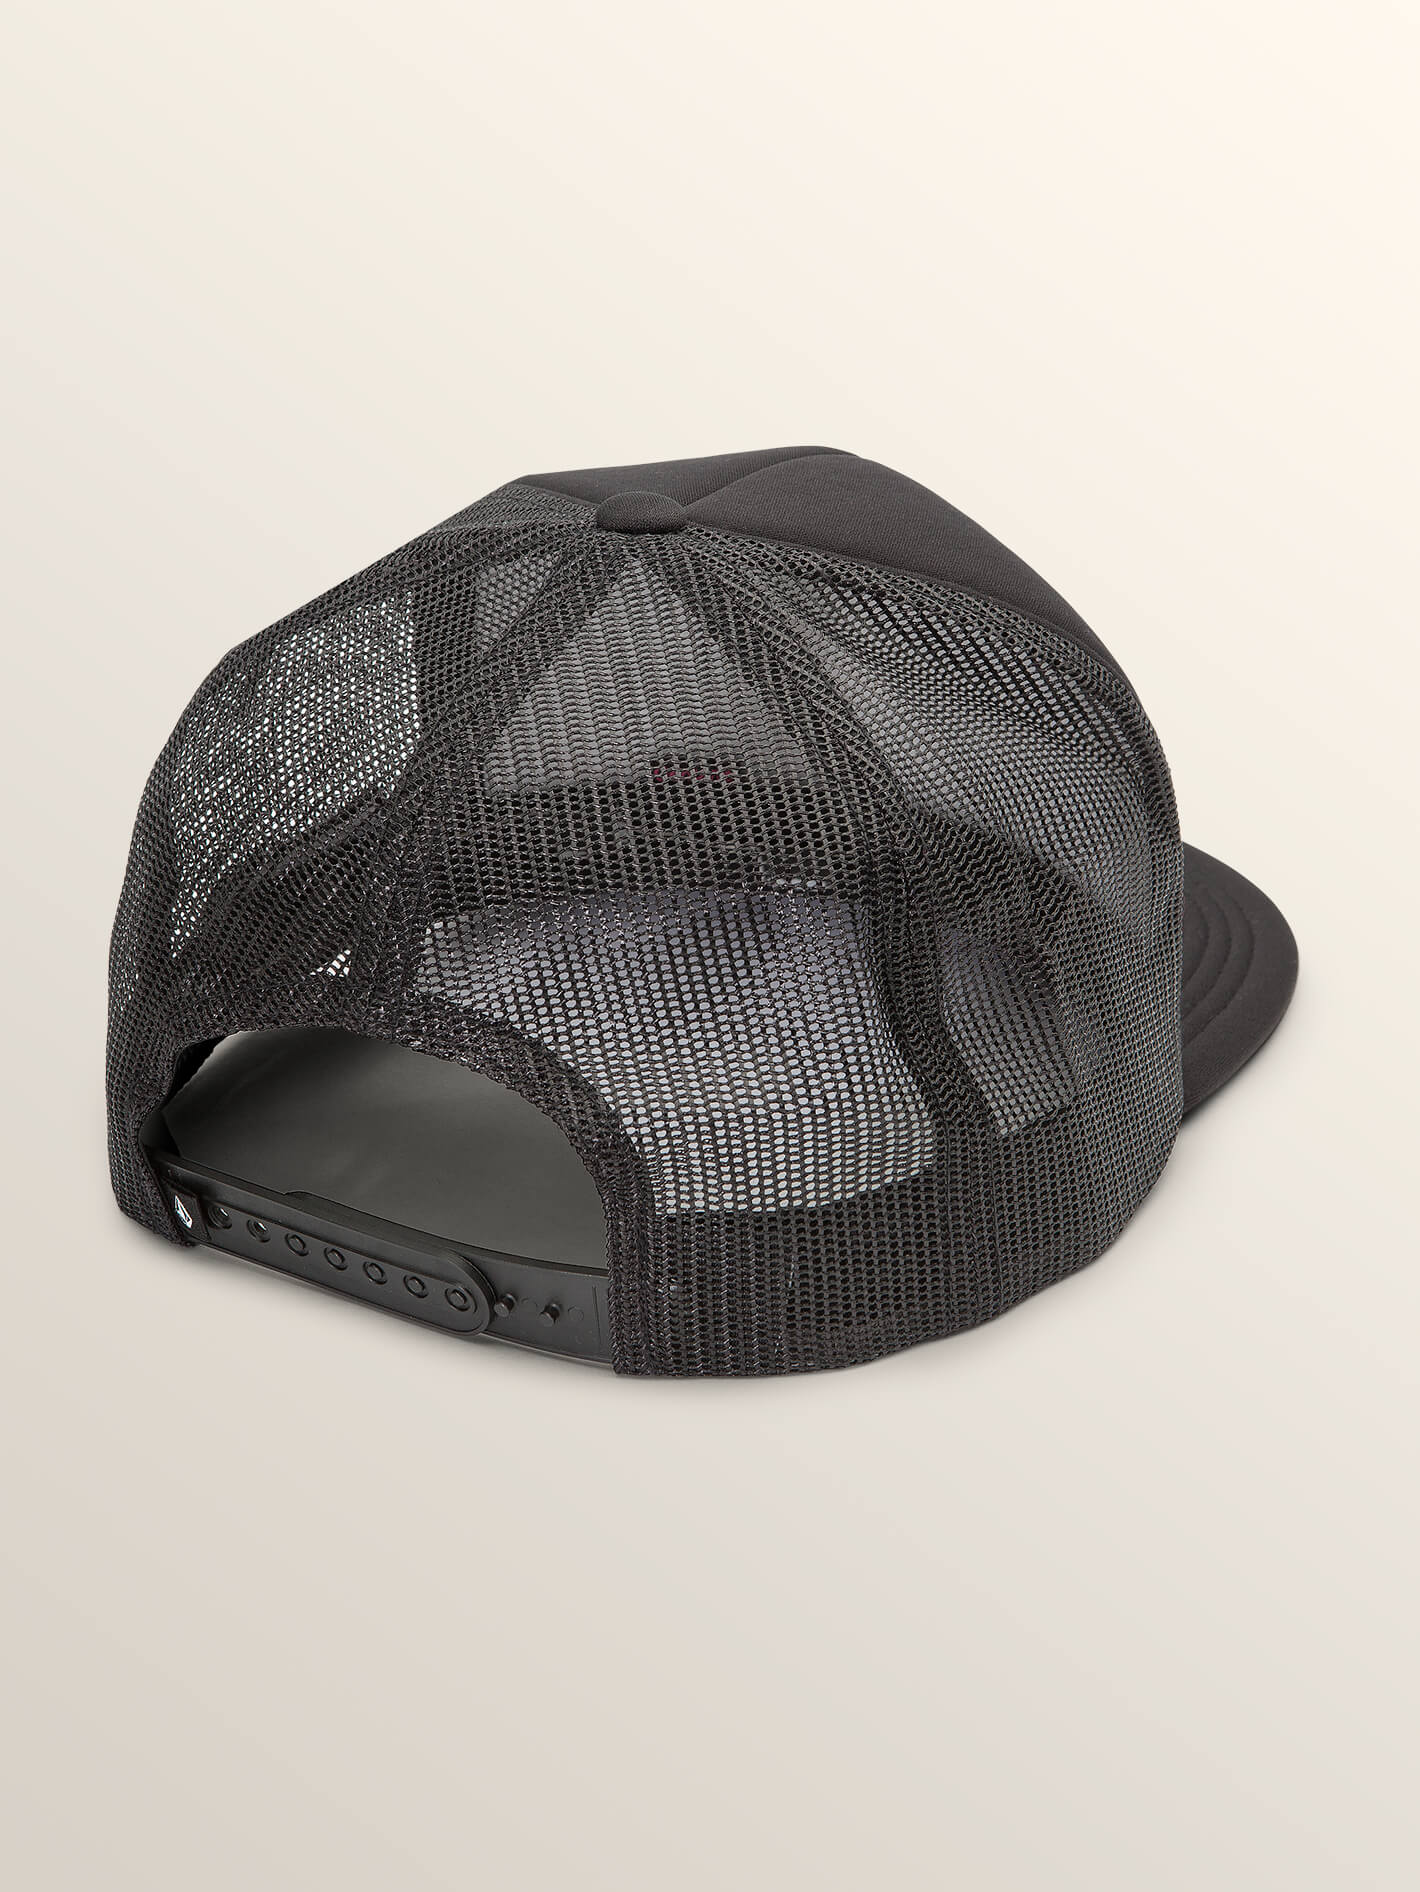 separation shoes 907a0 4d293 VPP Helmet Cheese Hat in BLACK - Alternative View